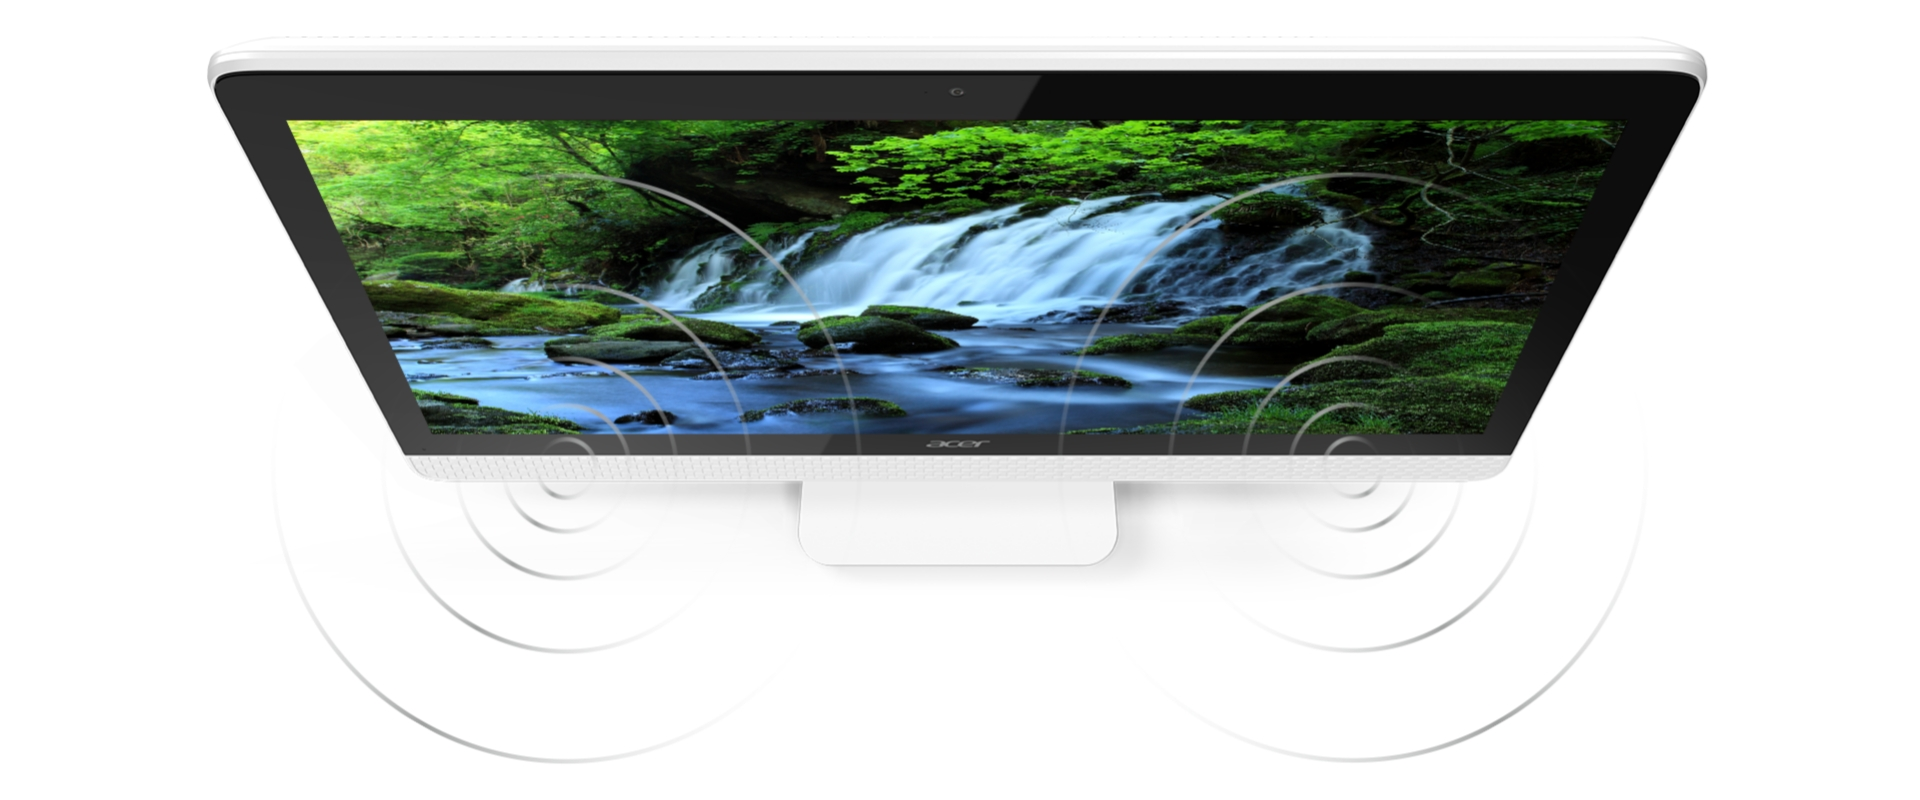 Aspire C20 - Perfect Home Entertainment - Large